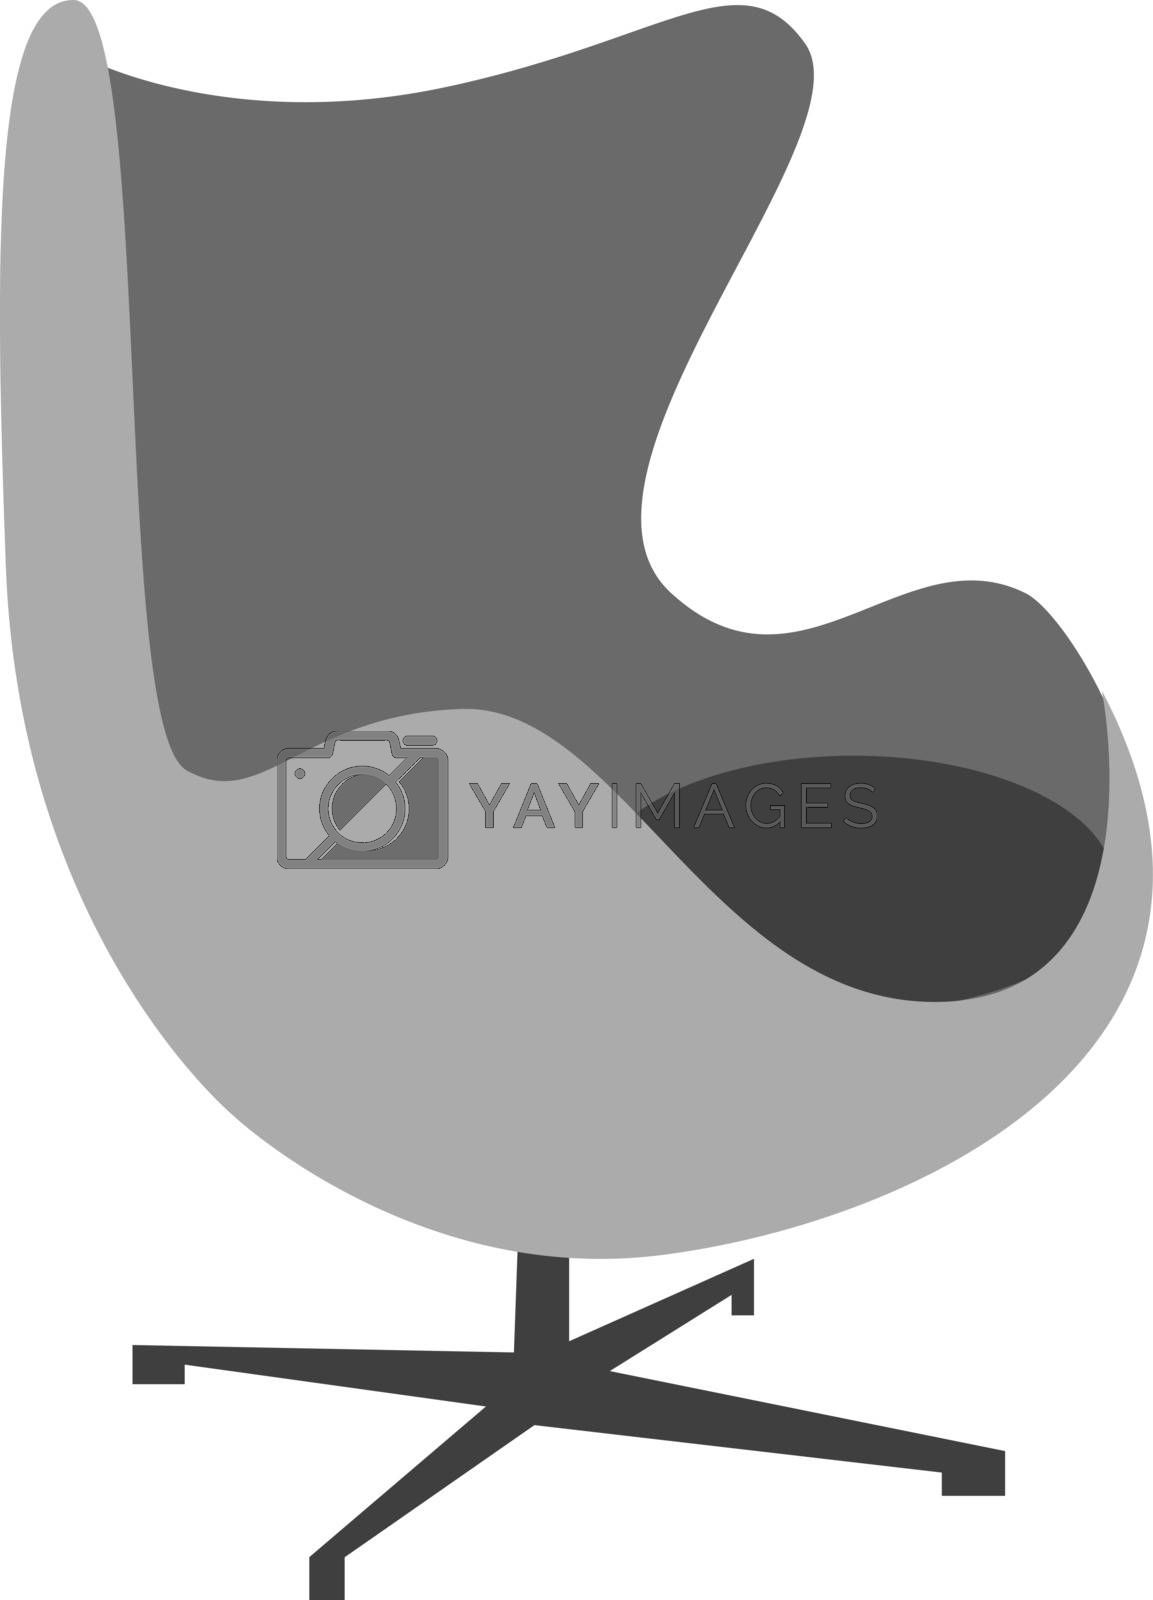 Royalty free image of Furniture/Drawing of a ball chair vector or color illustration by Morphart